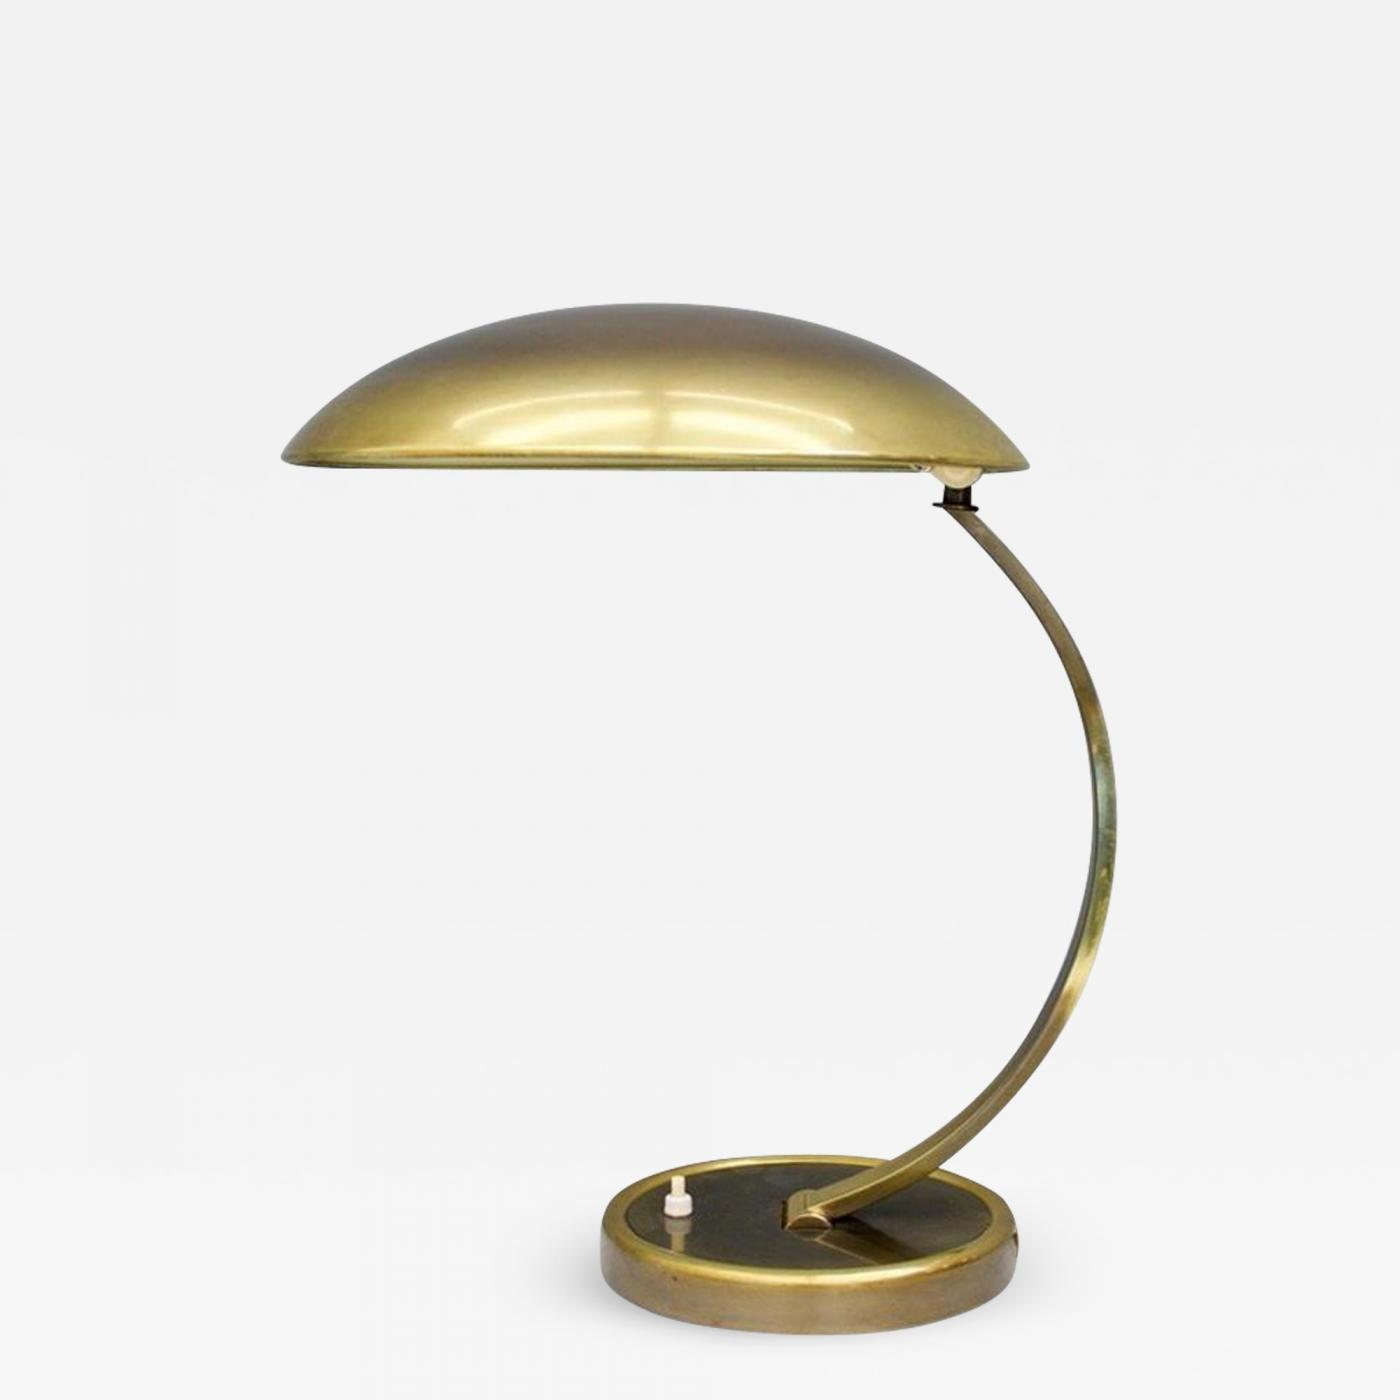 Leuchten Kaiser Kaiser-idell / Kaiser Leuchten /kaiser & Co. - Brass Desk Lamp By Christian Dell 6751 For Kaiser, Germany, 1950s